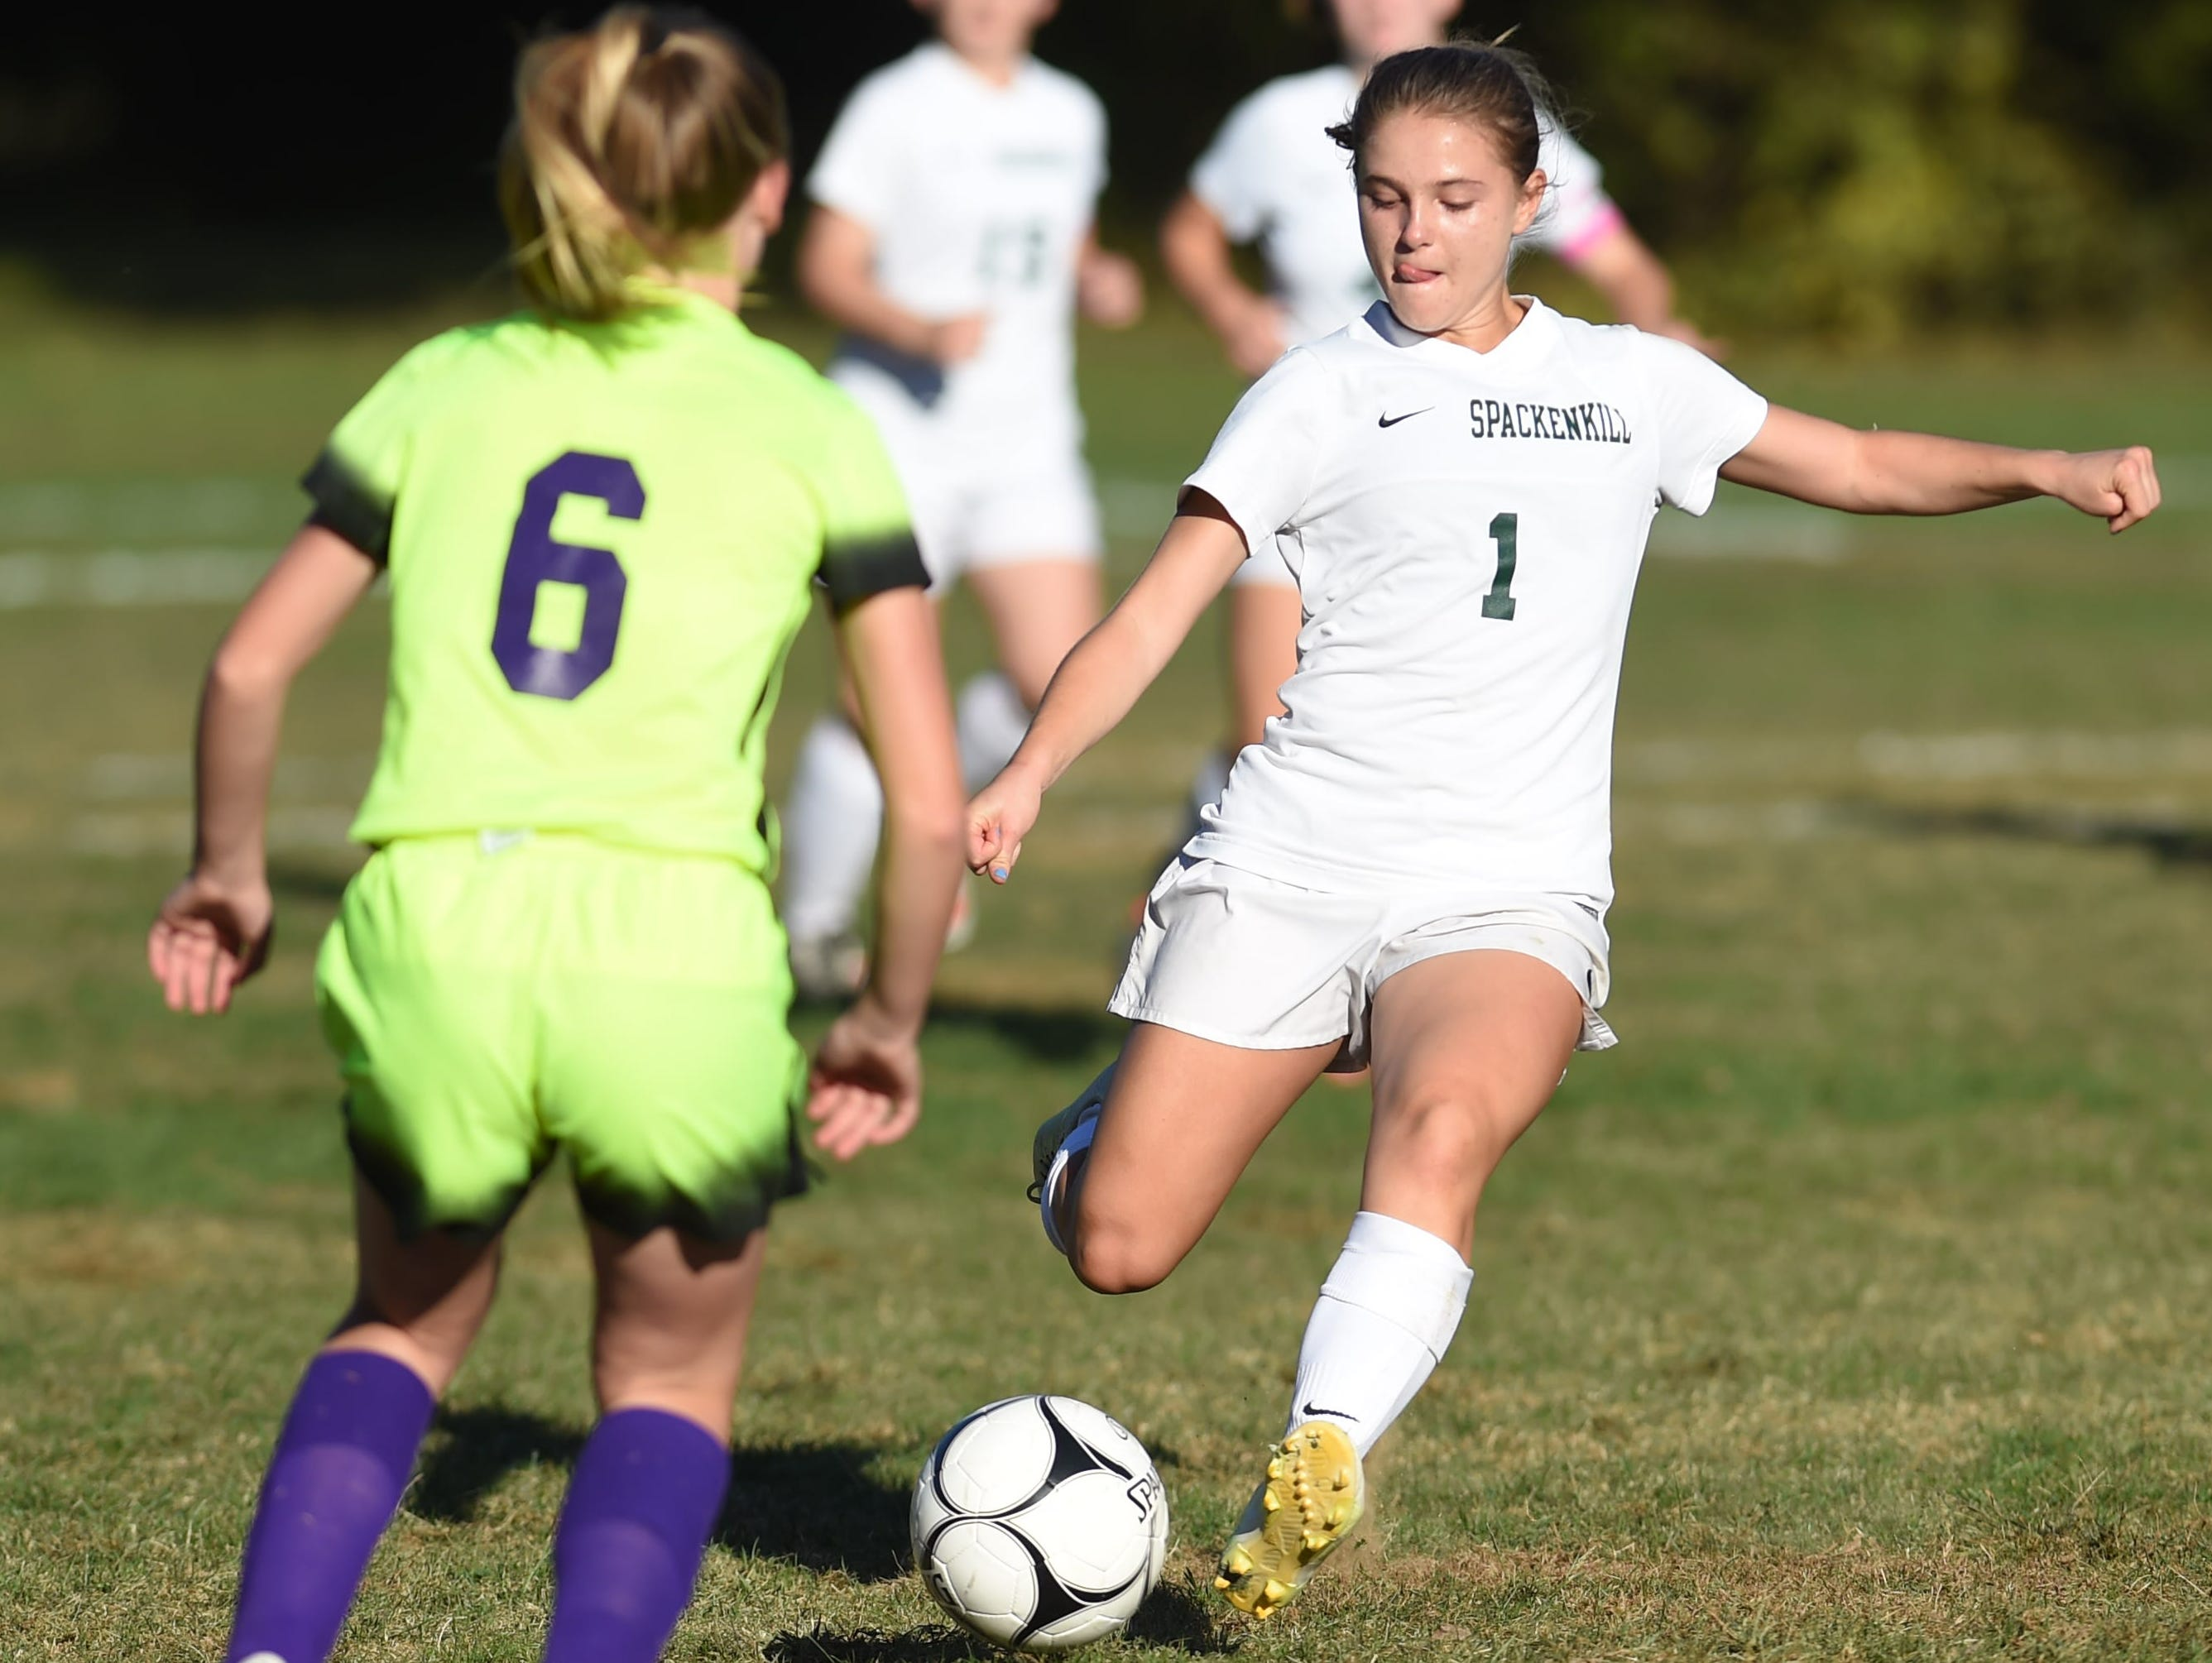 Spackenkill midfielder Maria Barefoot dribbles the ball against Rhinebeck on Oct. 6 at Spackenkill.